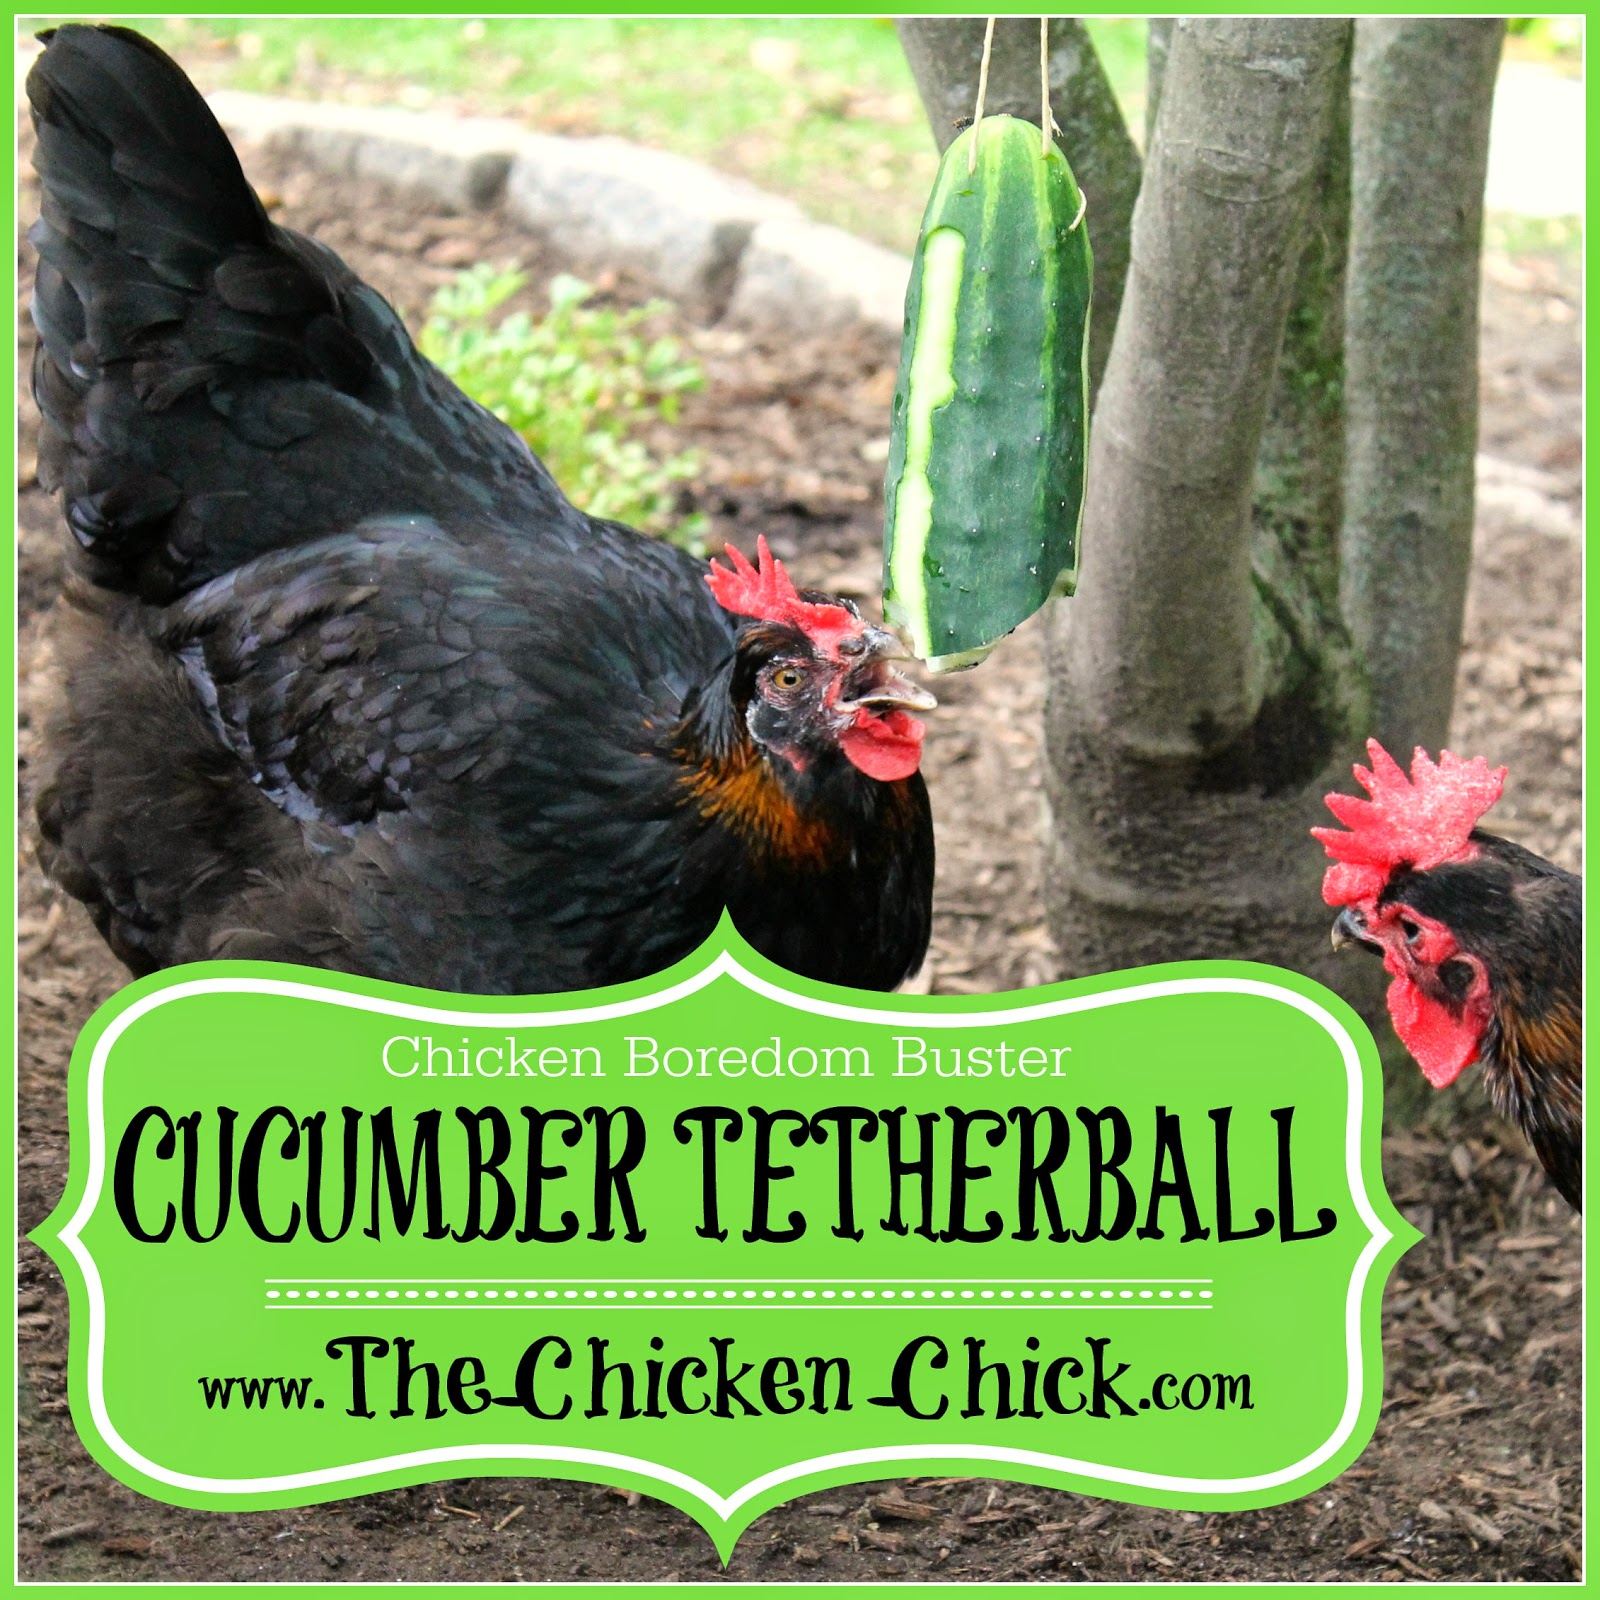 Cucumber tetherball